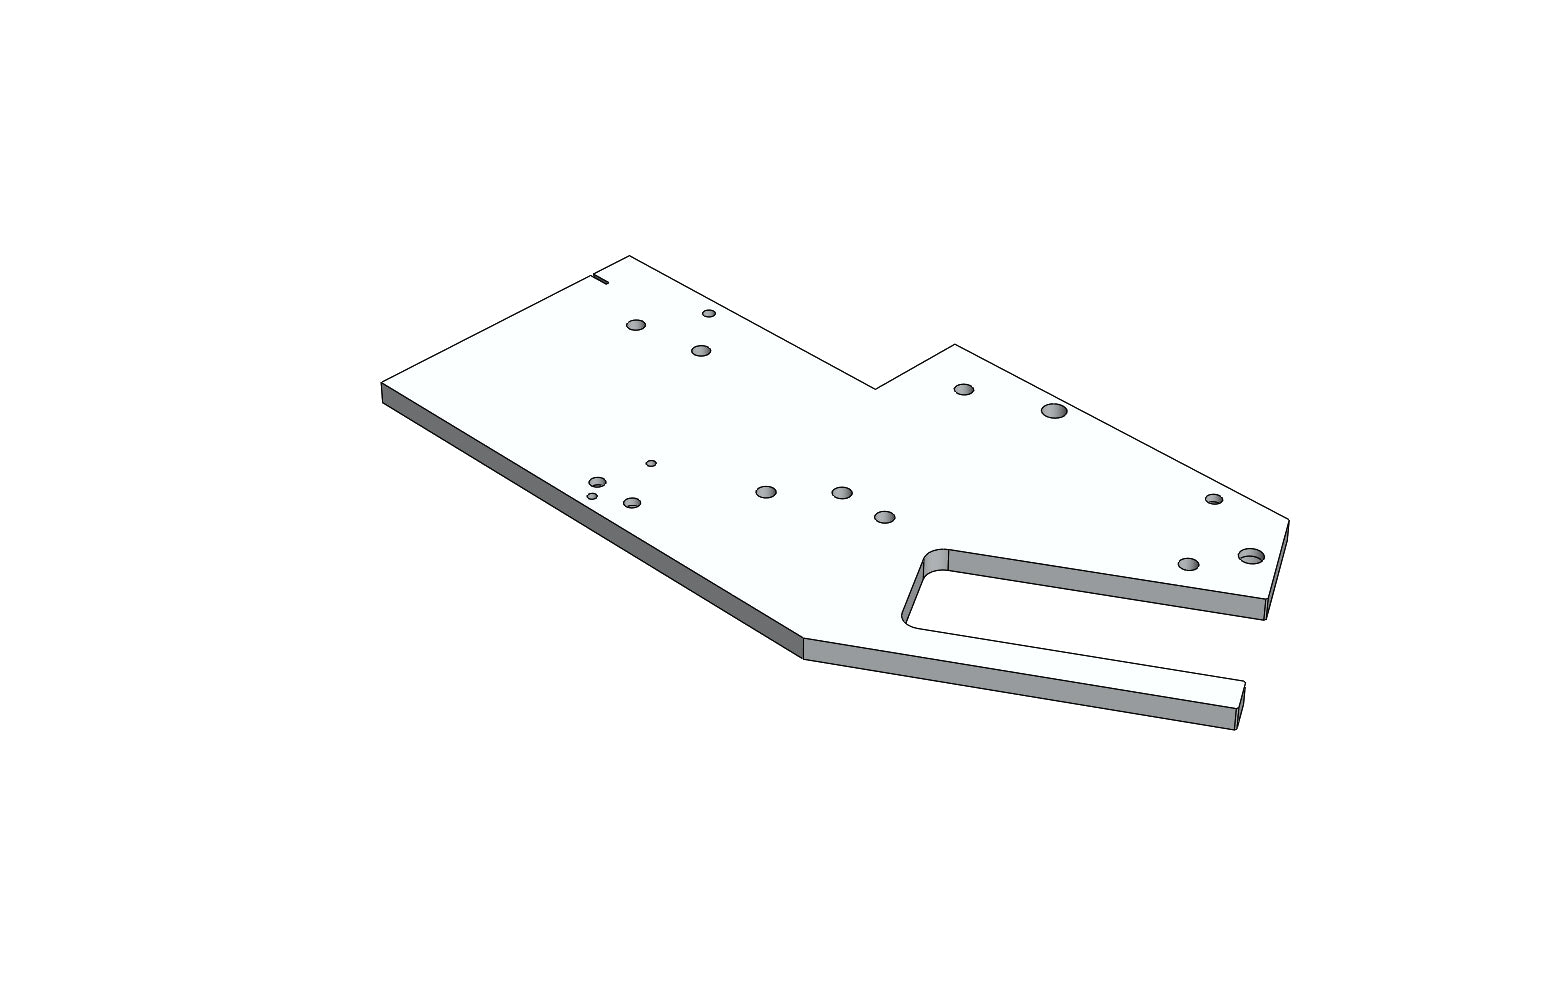 TC 6271575A - RH PLATE | Spare Parts for King, Kalish and Swiftpack Packaging Machines